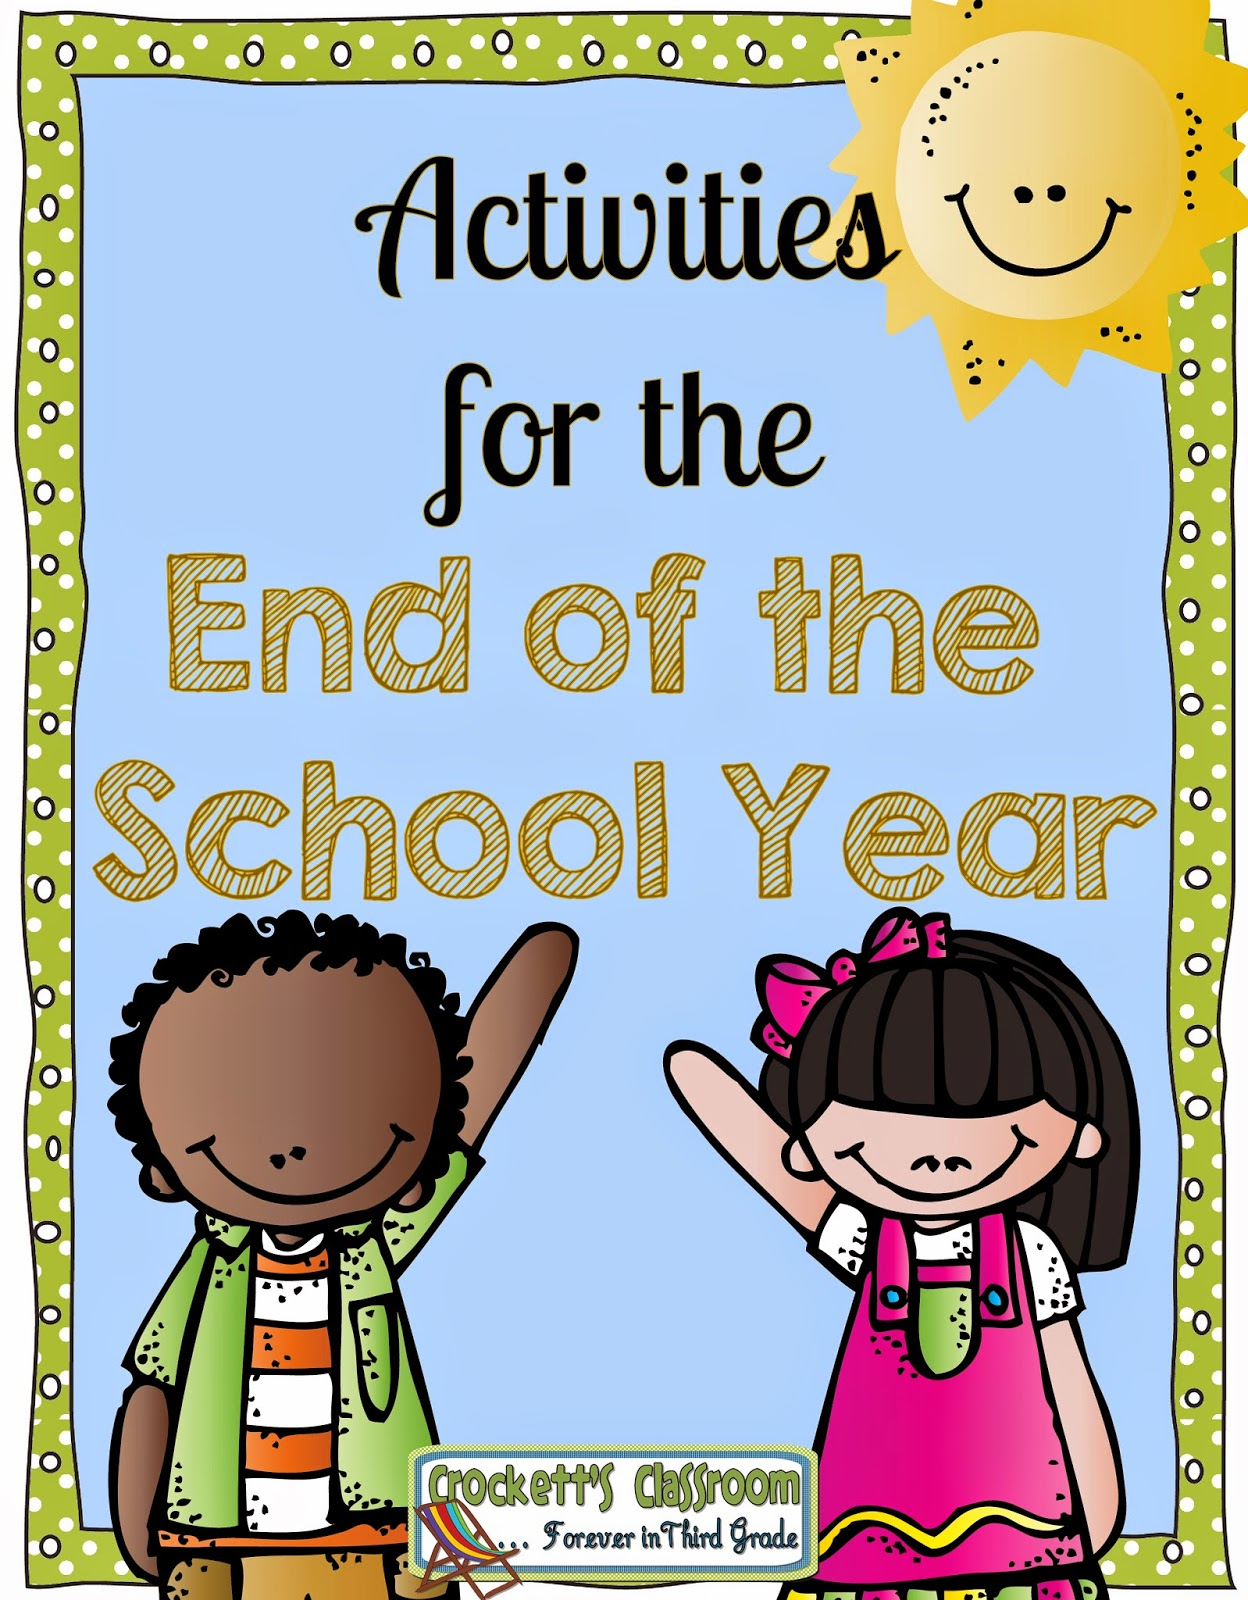 End of Year Activities--Crockett's Classroom